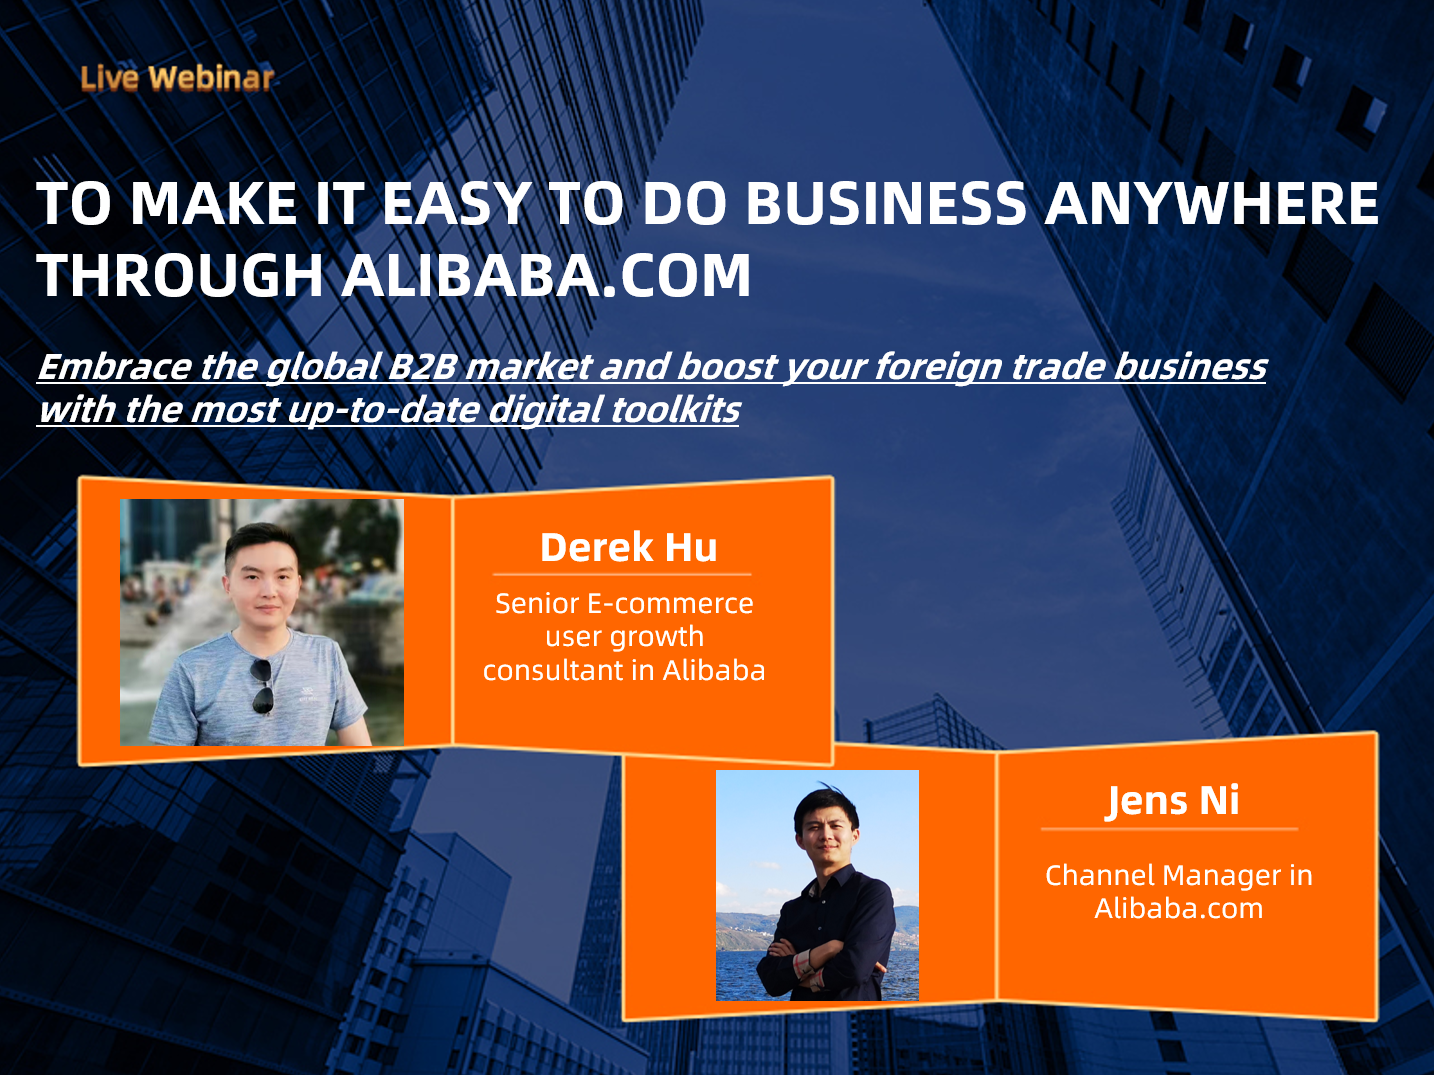 To make it easy to do business anywhere through Alibaba.com